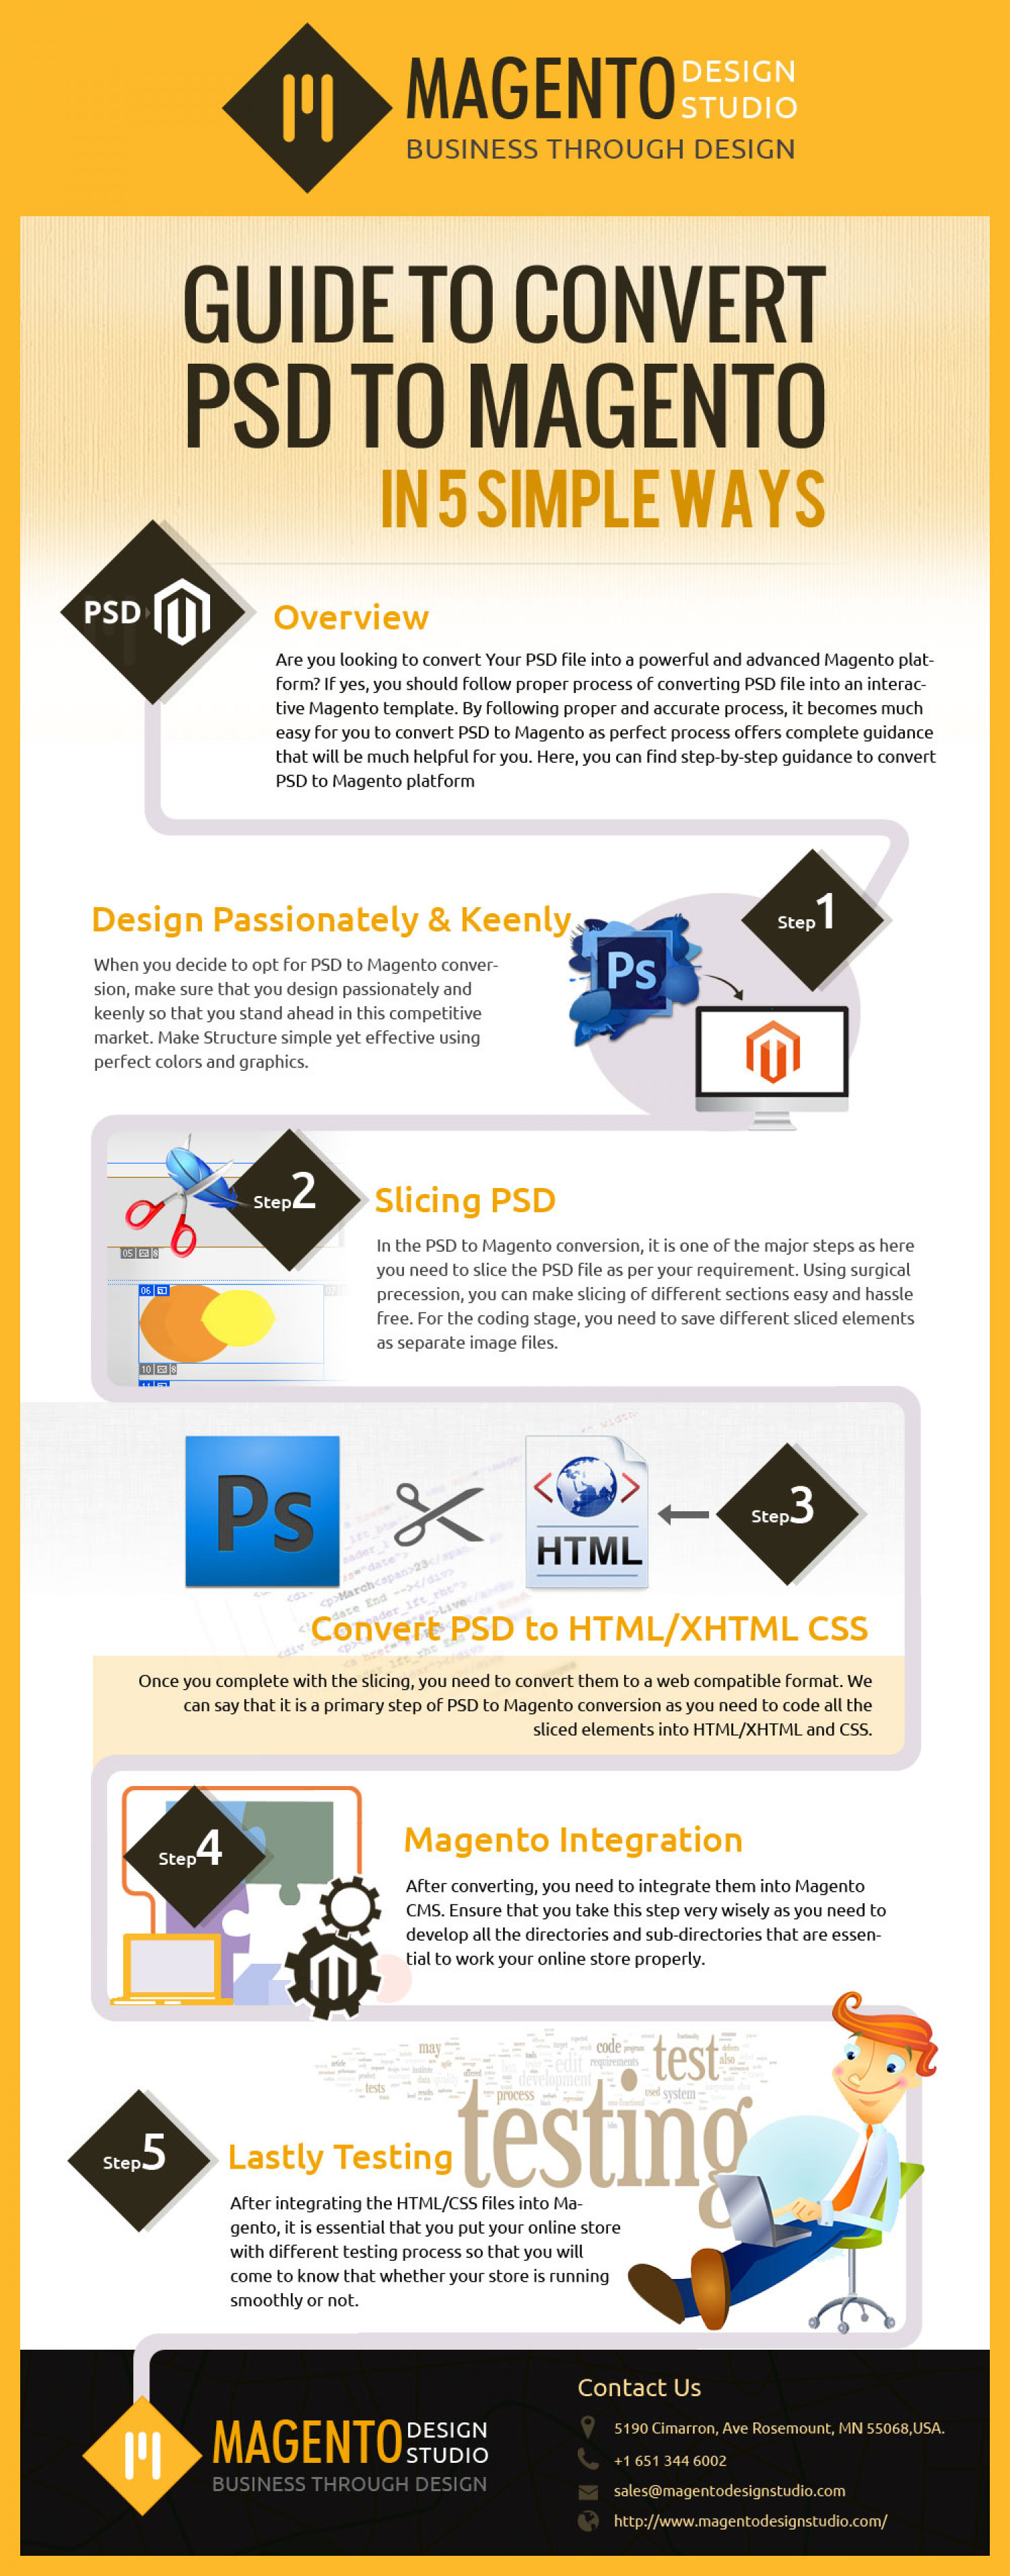 Guide to Convert PSD to Magento in 5 Simple Ways Infographic